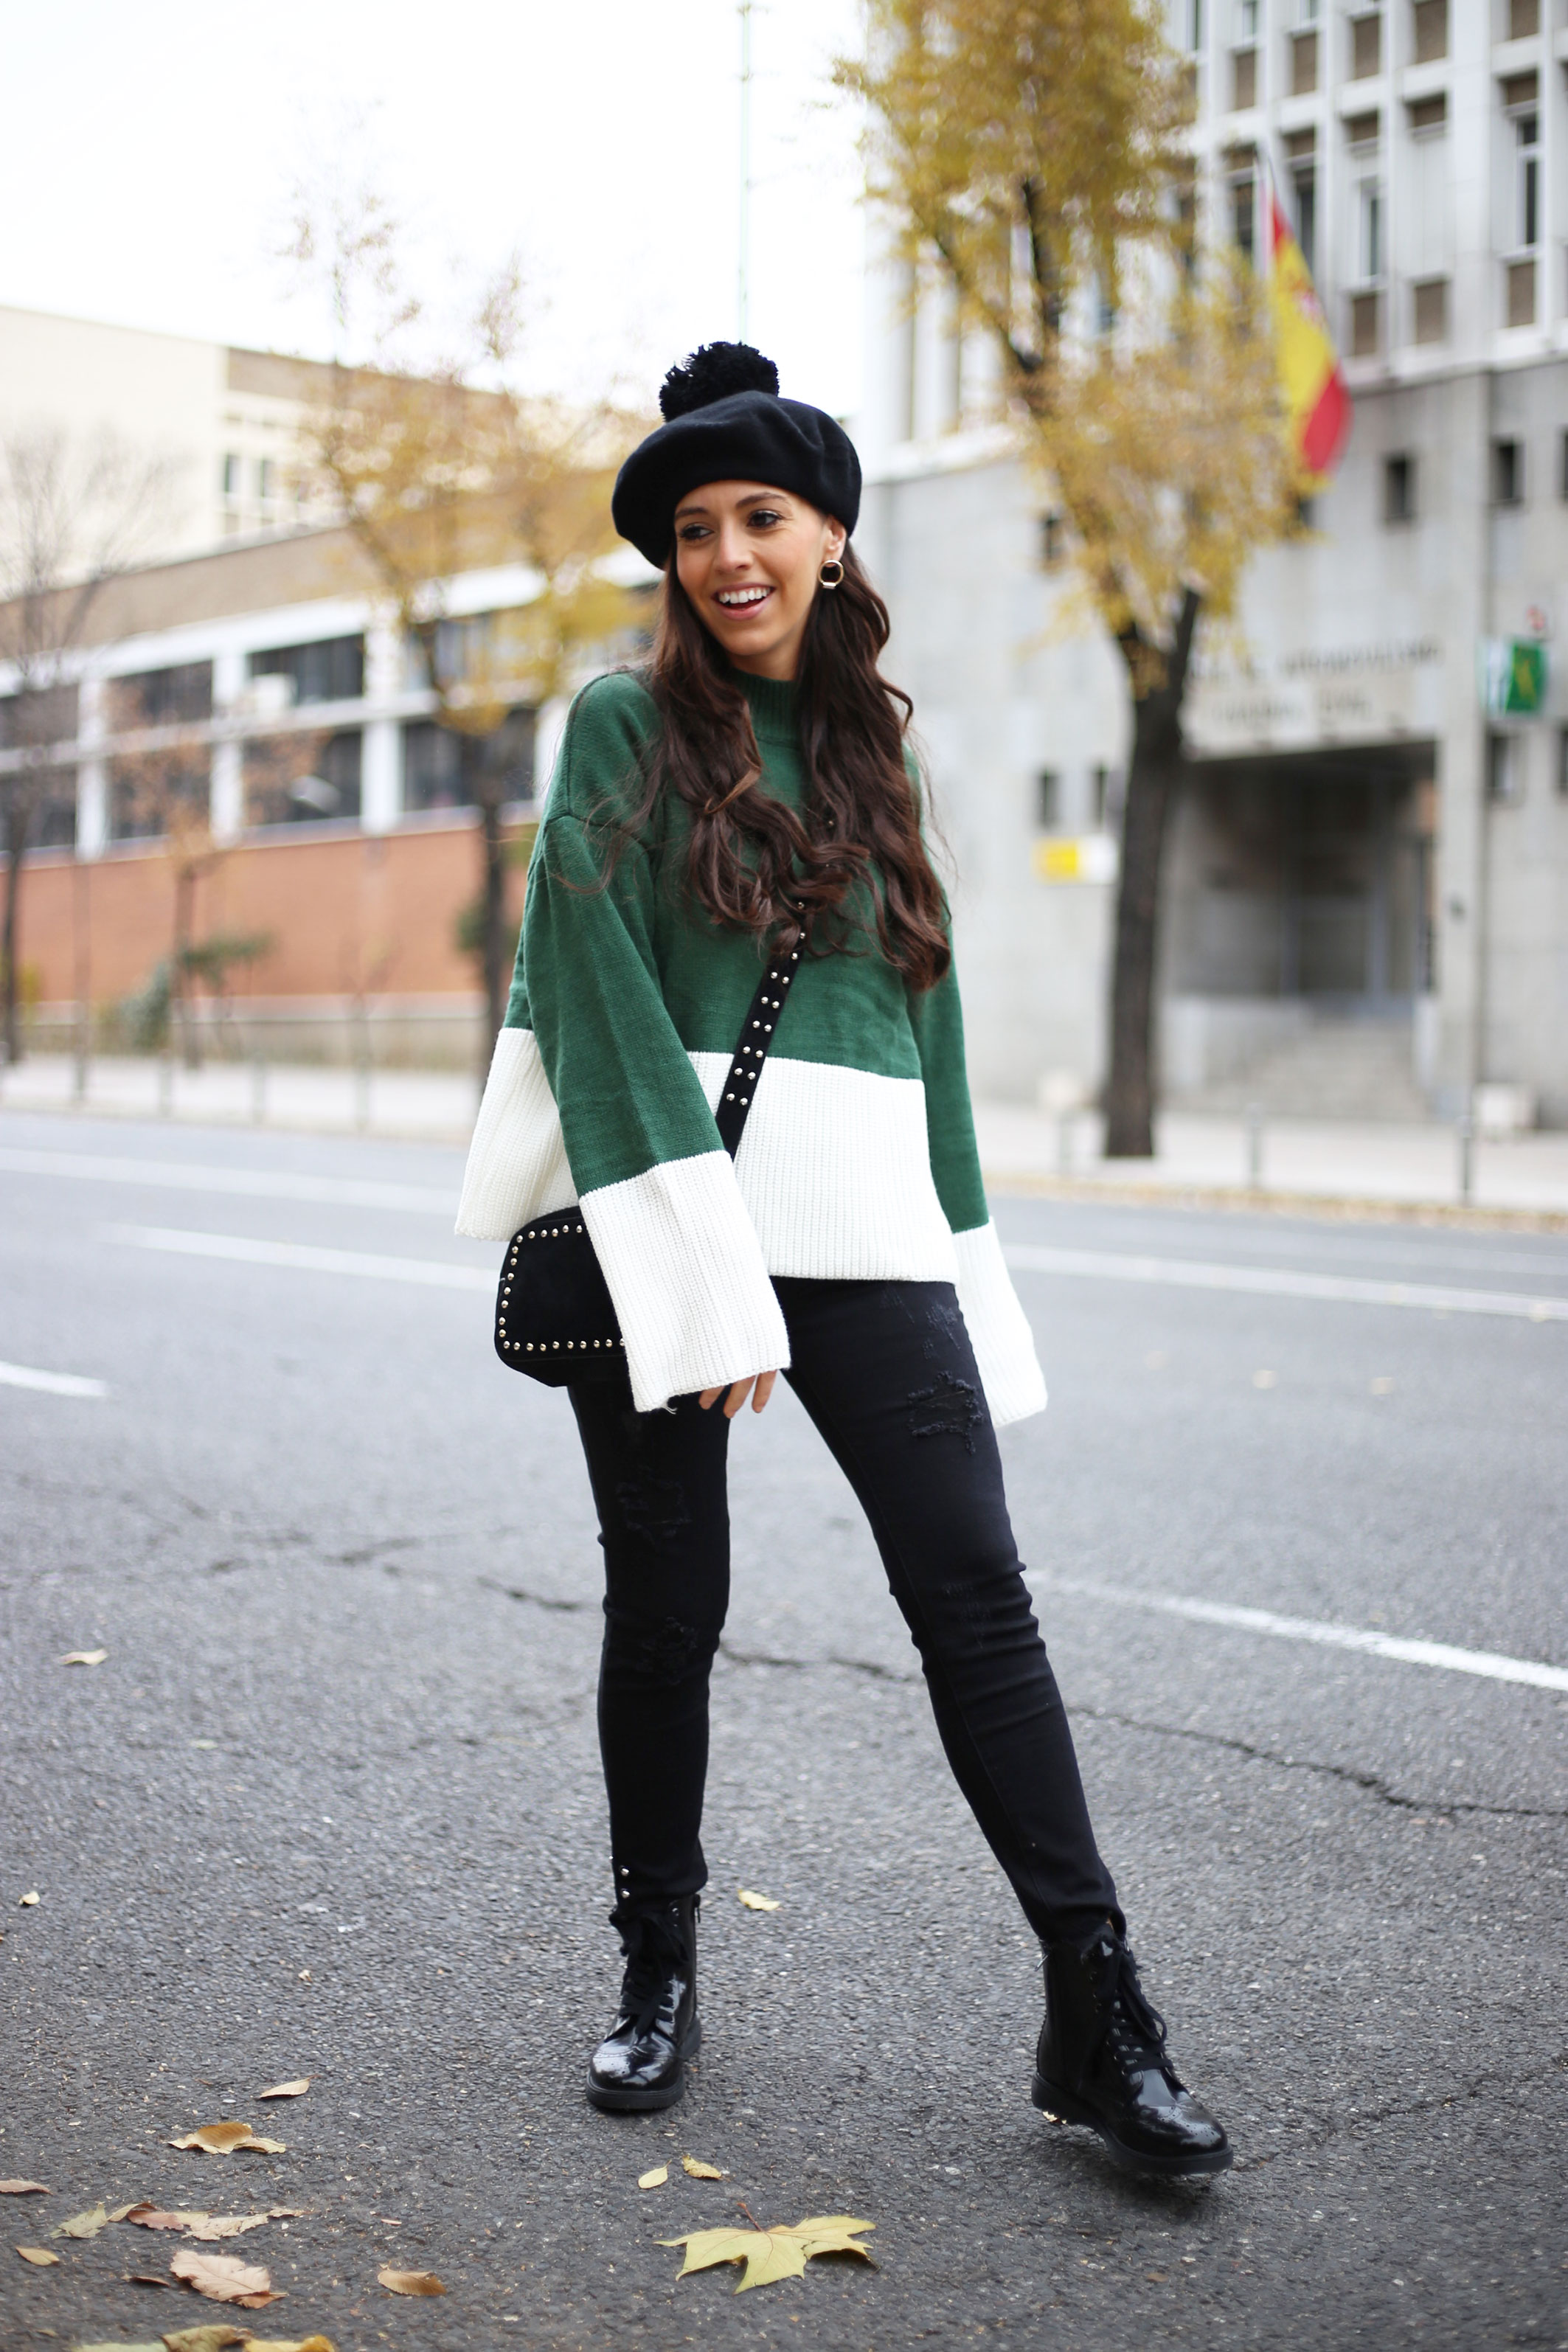 green sweater, black beret, street style, winter outfit